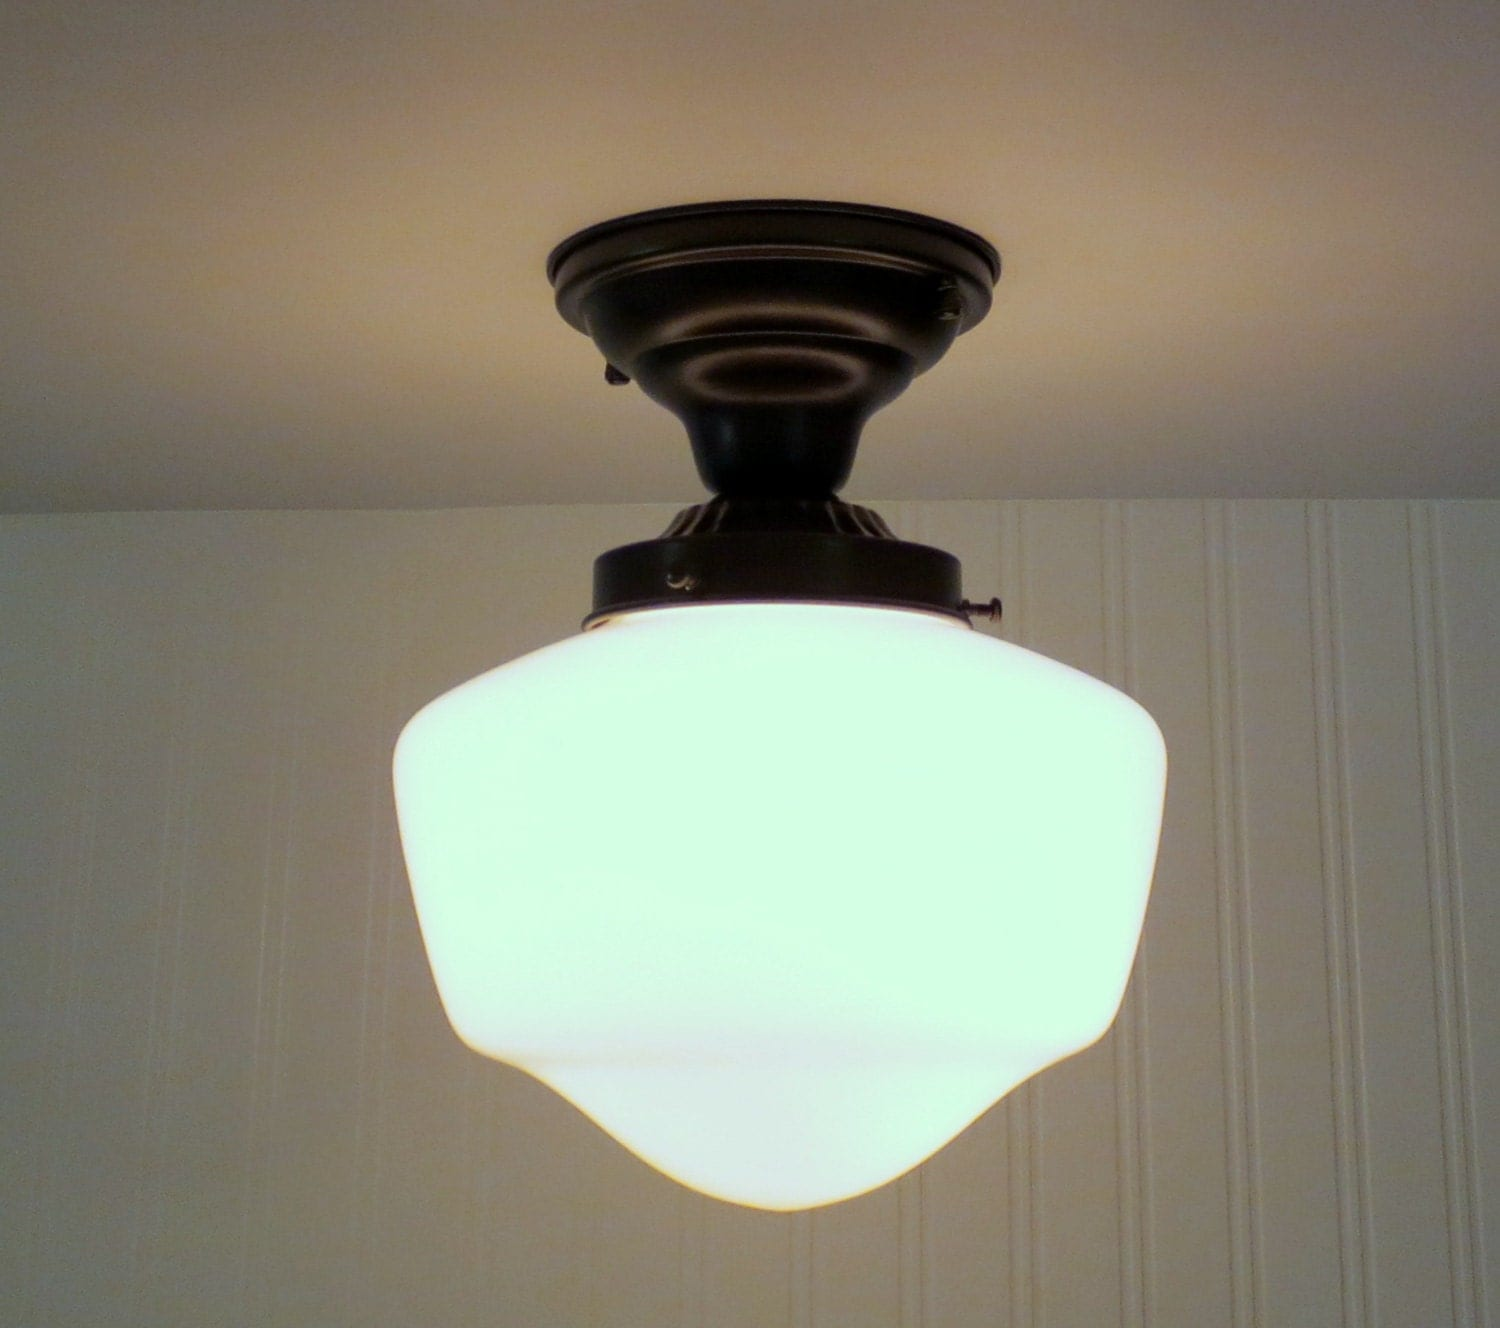 Machias CEILING LIGHT Fixture Replica Schoolhouse Farmhouse